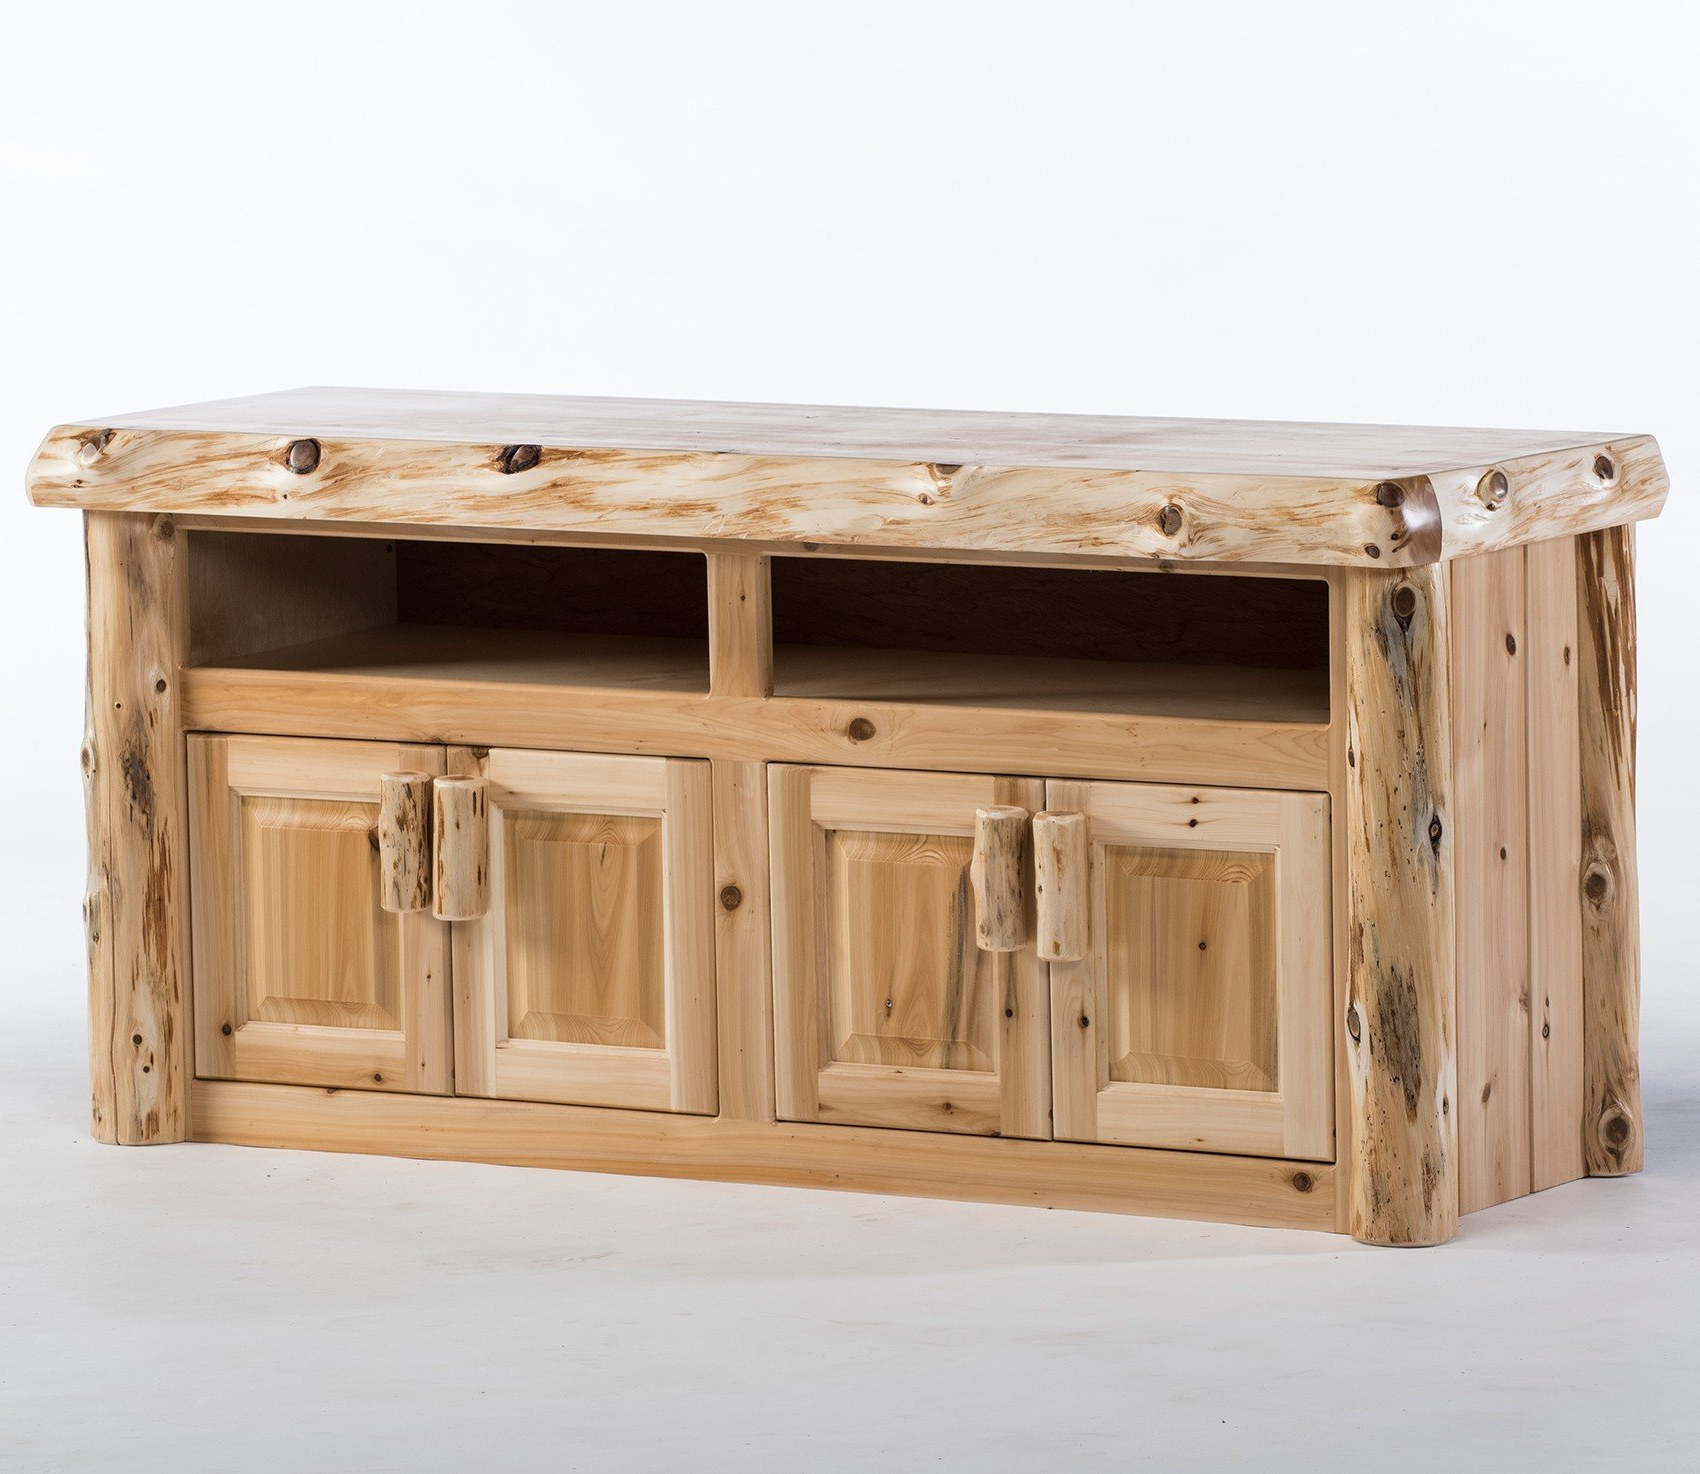 Recent Reclaimed Wood Tv Stands & Rustic Tv Stands: Log Tv Stand & Rustic Regarding Rustic Wood Tv Cabinets (Gallery 11 of 20)